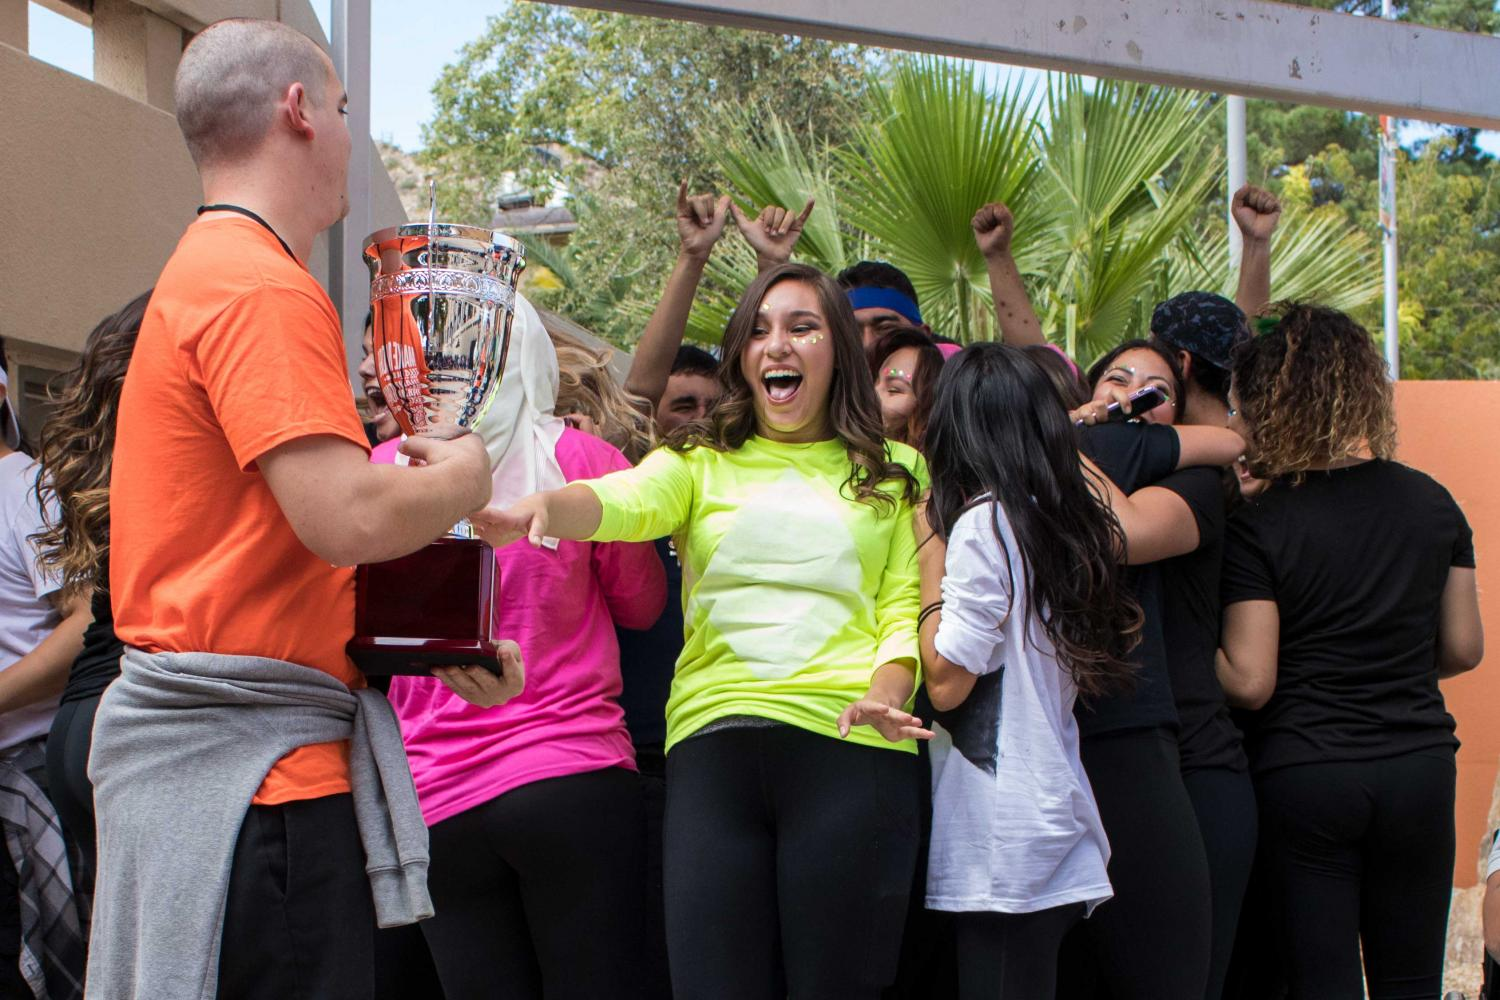 Members of UTEP's Alpha Xi Delta rejoice after they are announced as winners of the lip sync battle.